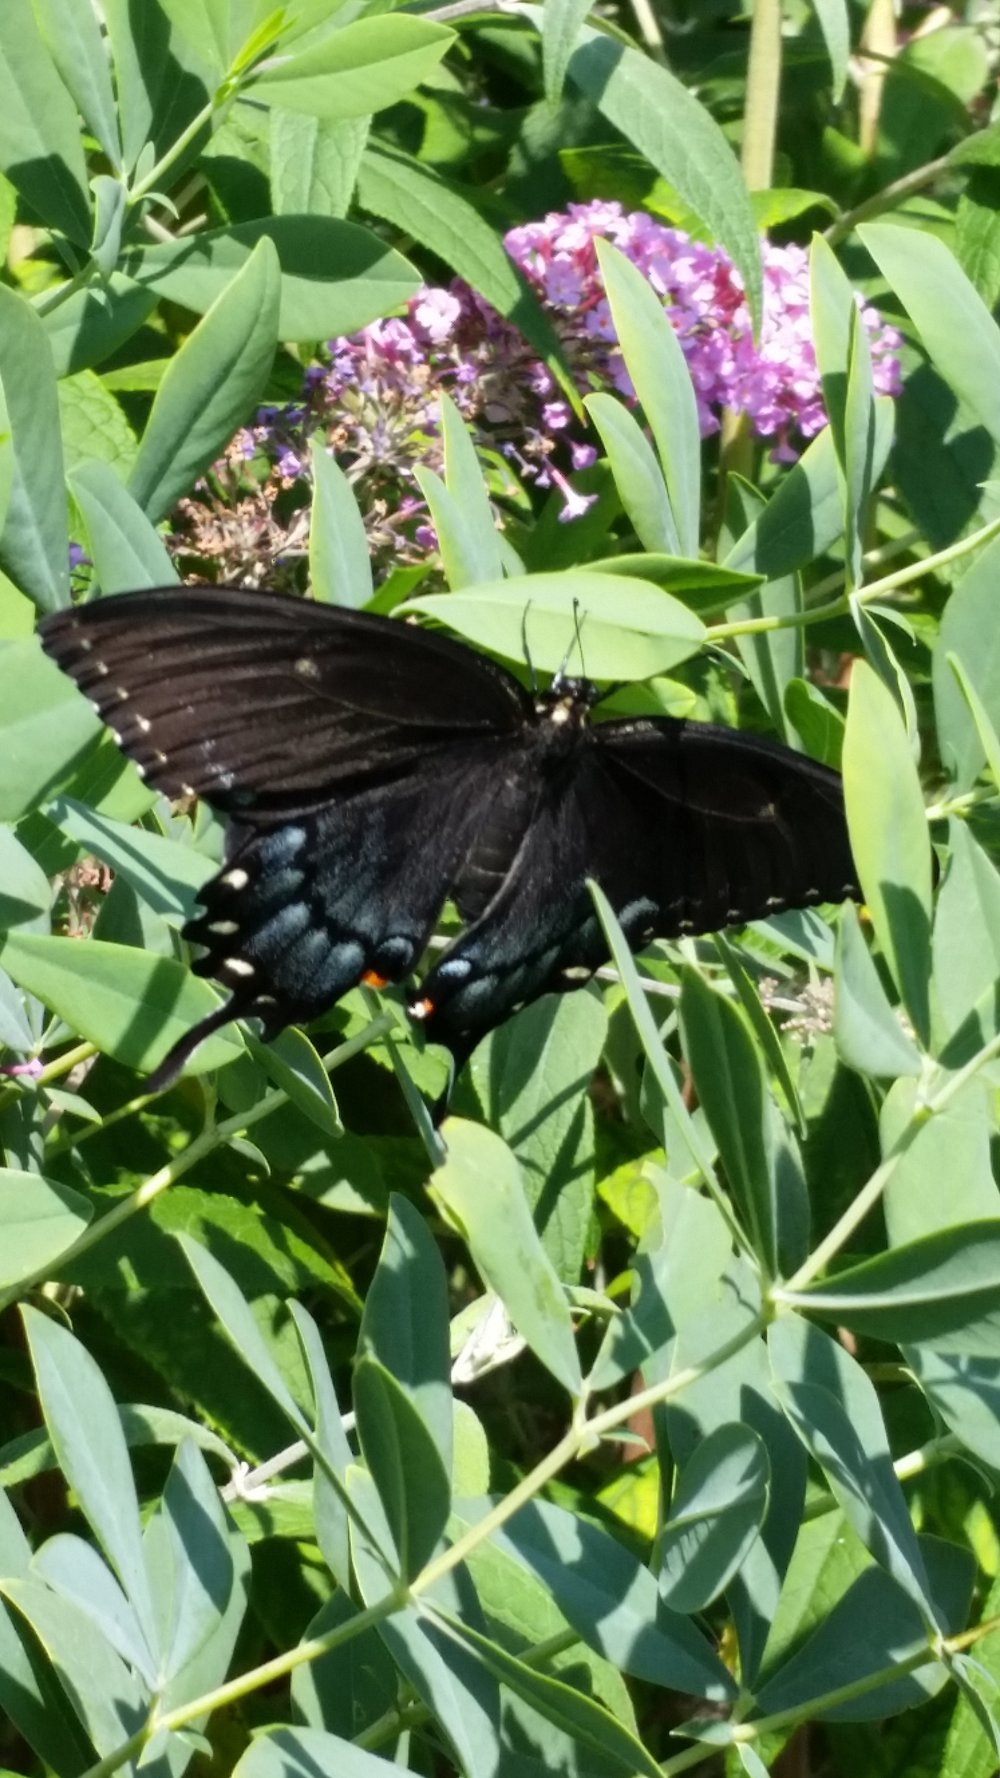 The female tiger swallowtail can appear in a dark form as shown here.